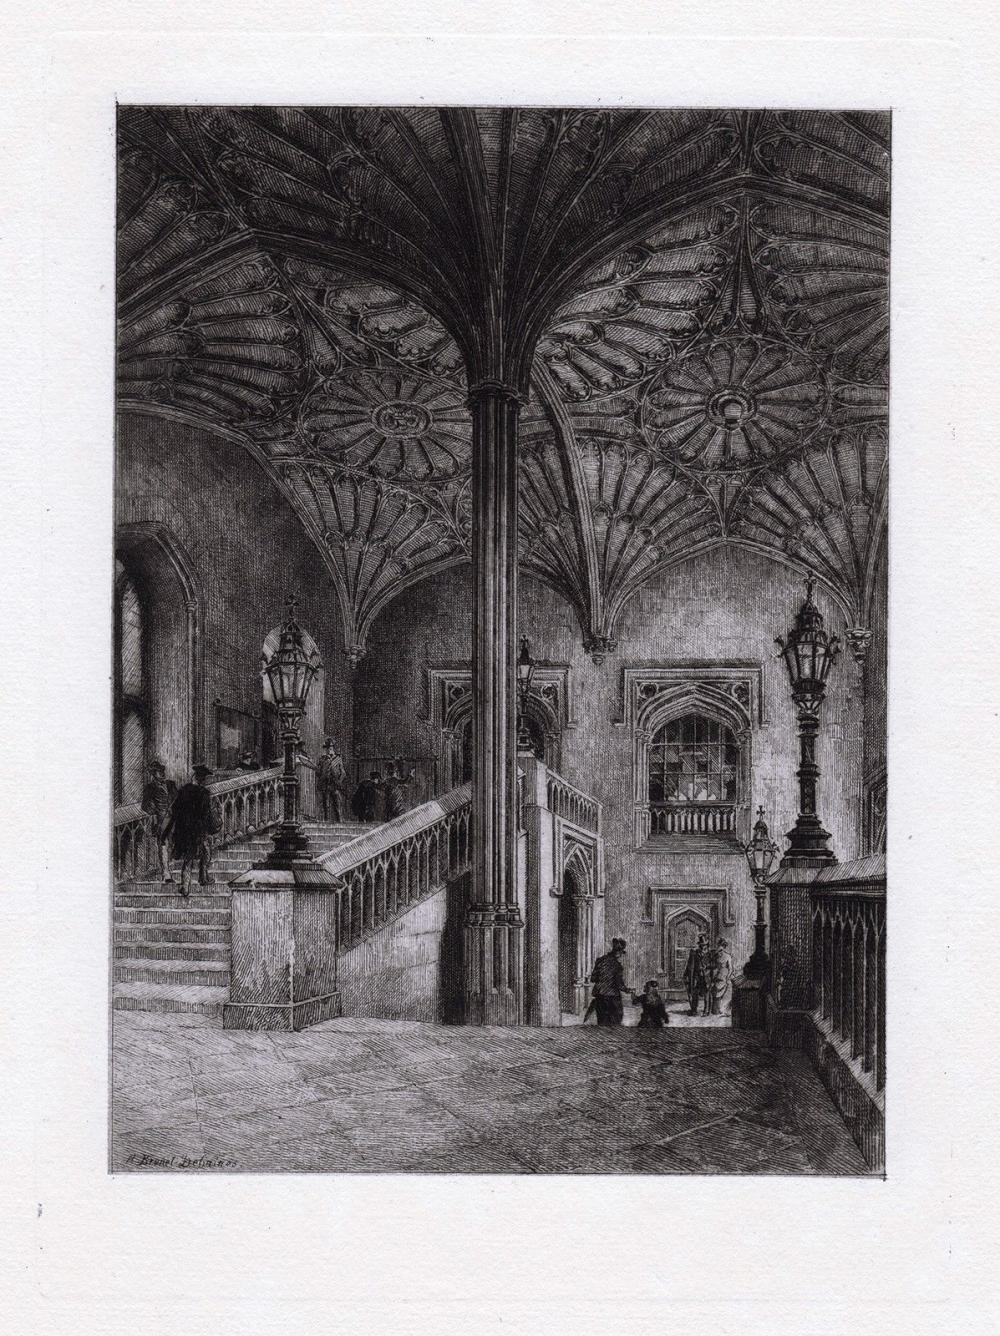 Alfred Louis Brunet Debaines Staircase of Christchurch 1879 etching